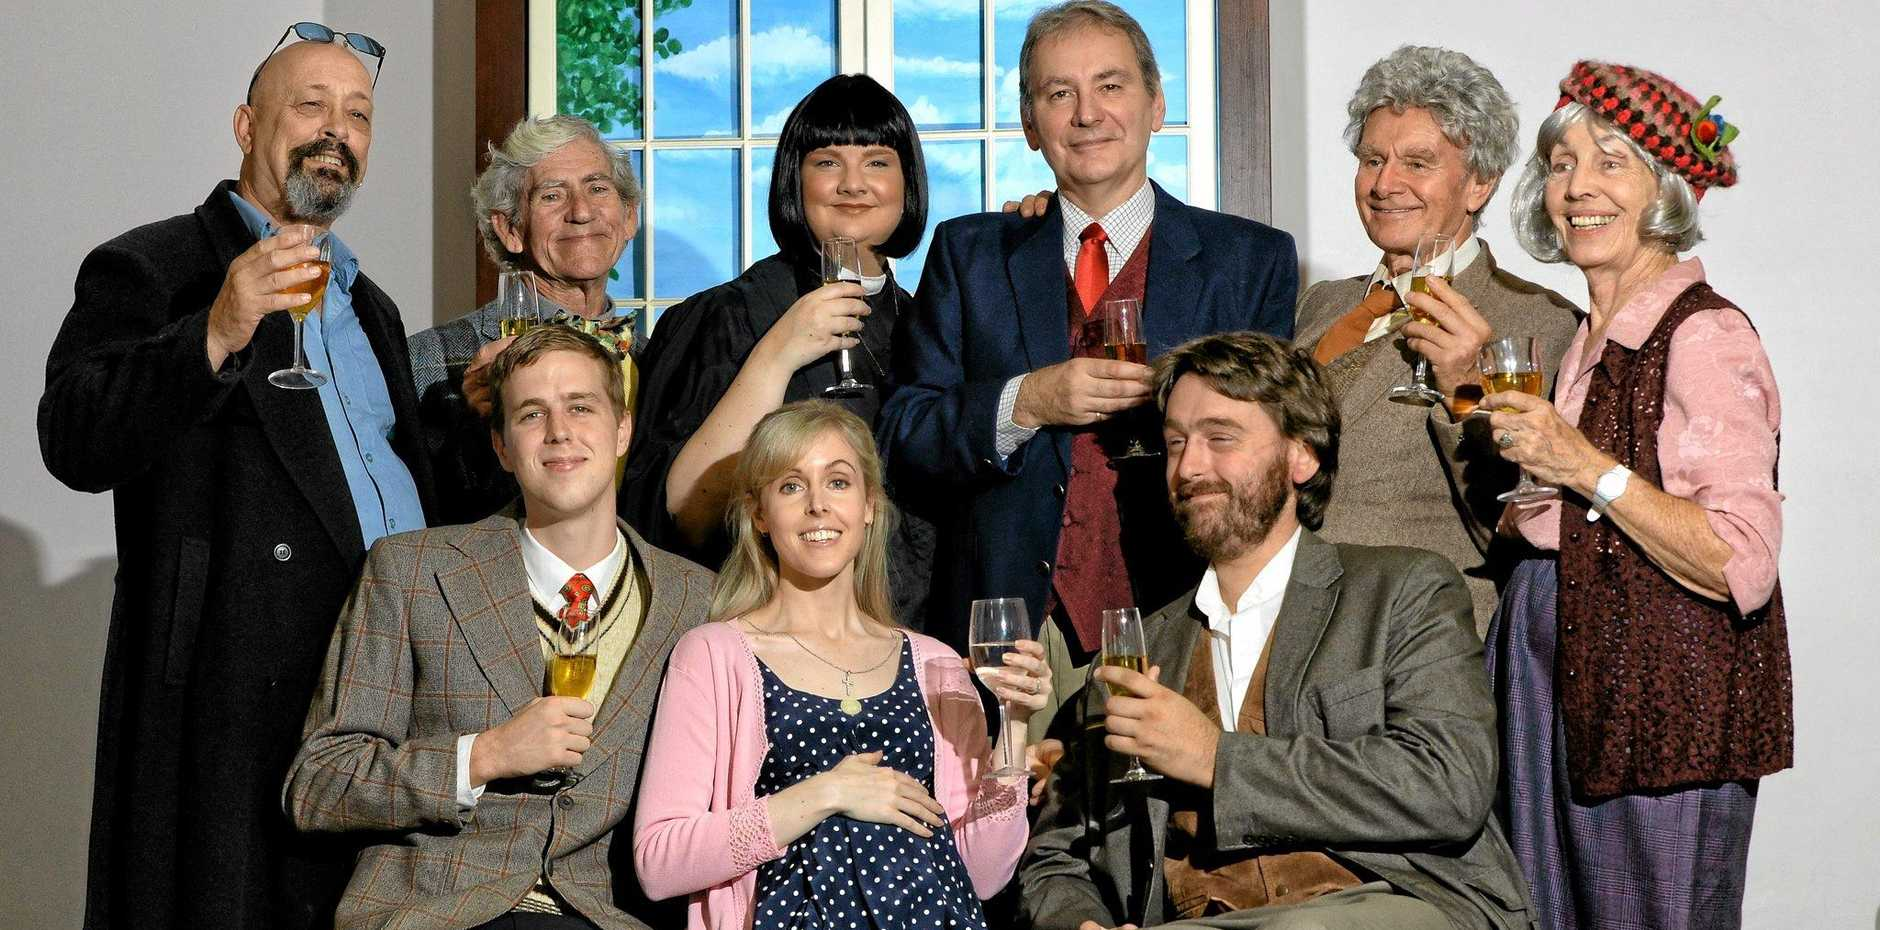 BRITISH FAVOURITE: The cast of the Ipswich Musical Theatre Company - Dinner Theatre's production of The Vicar of Dibley.